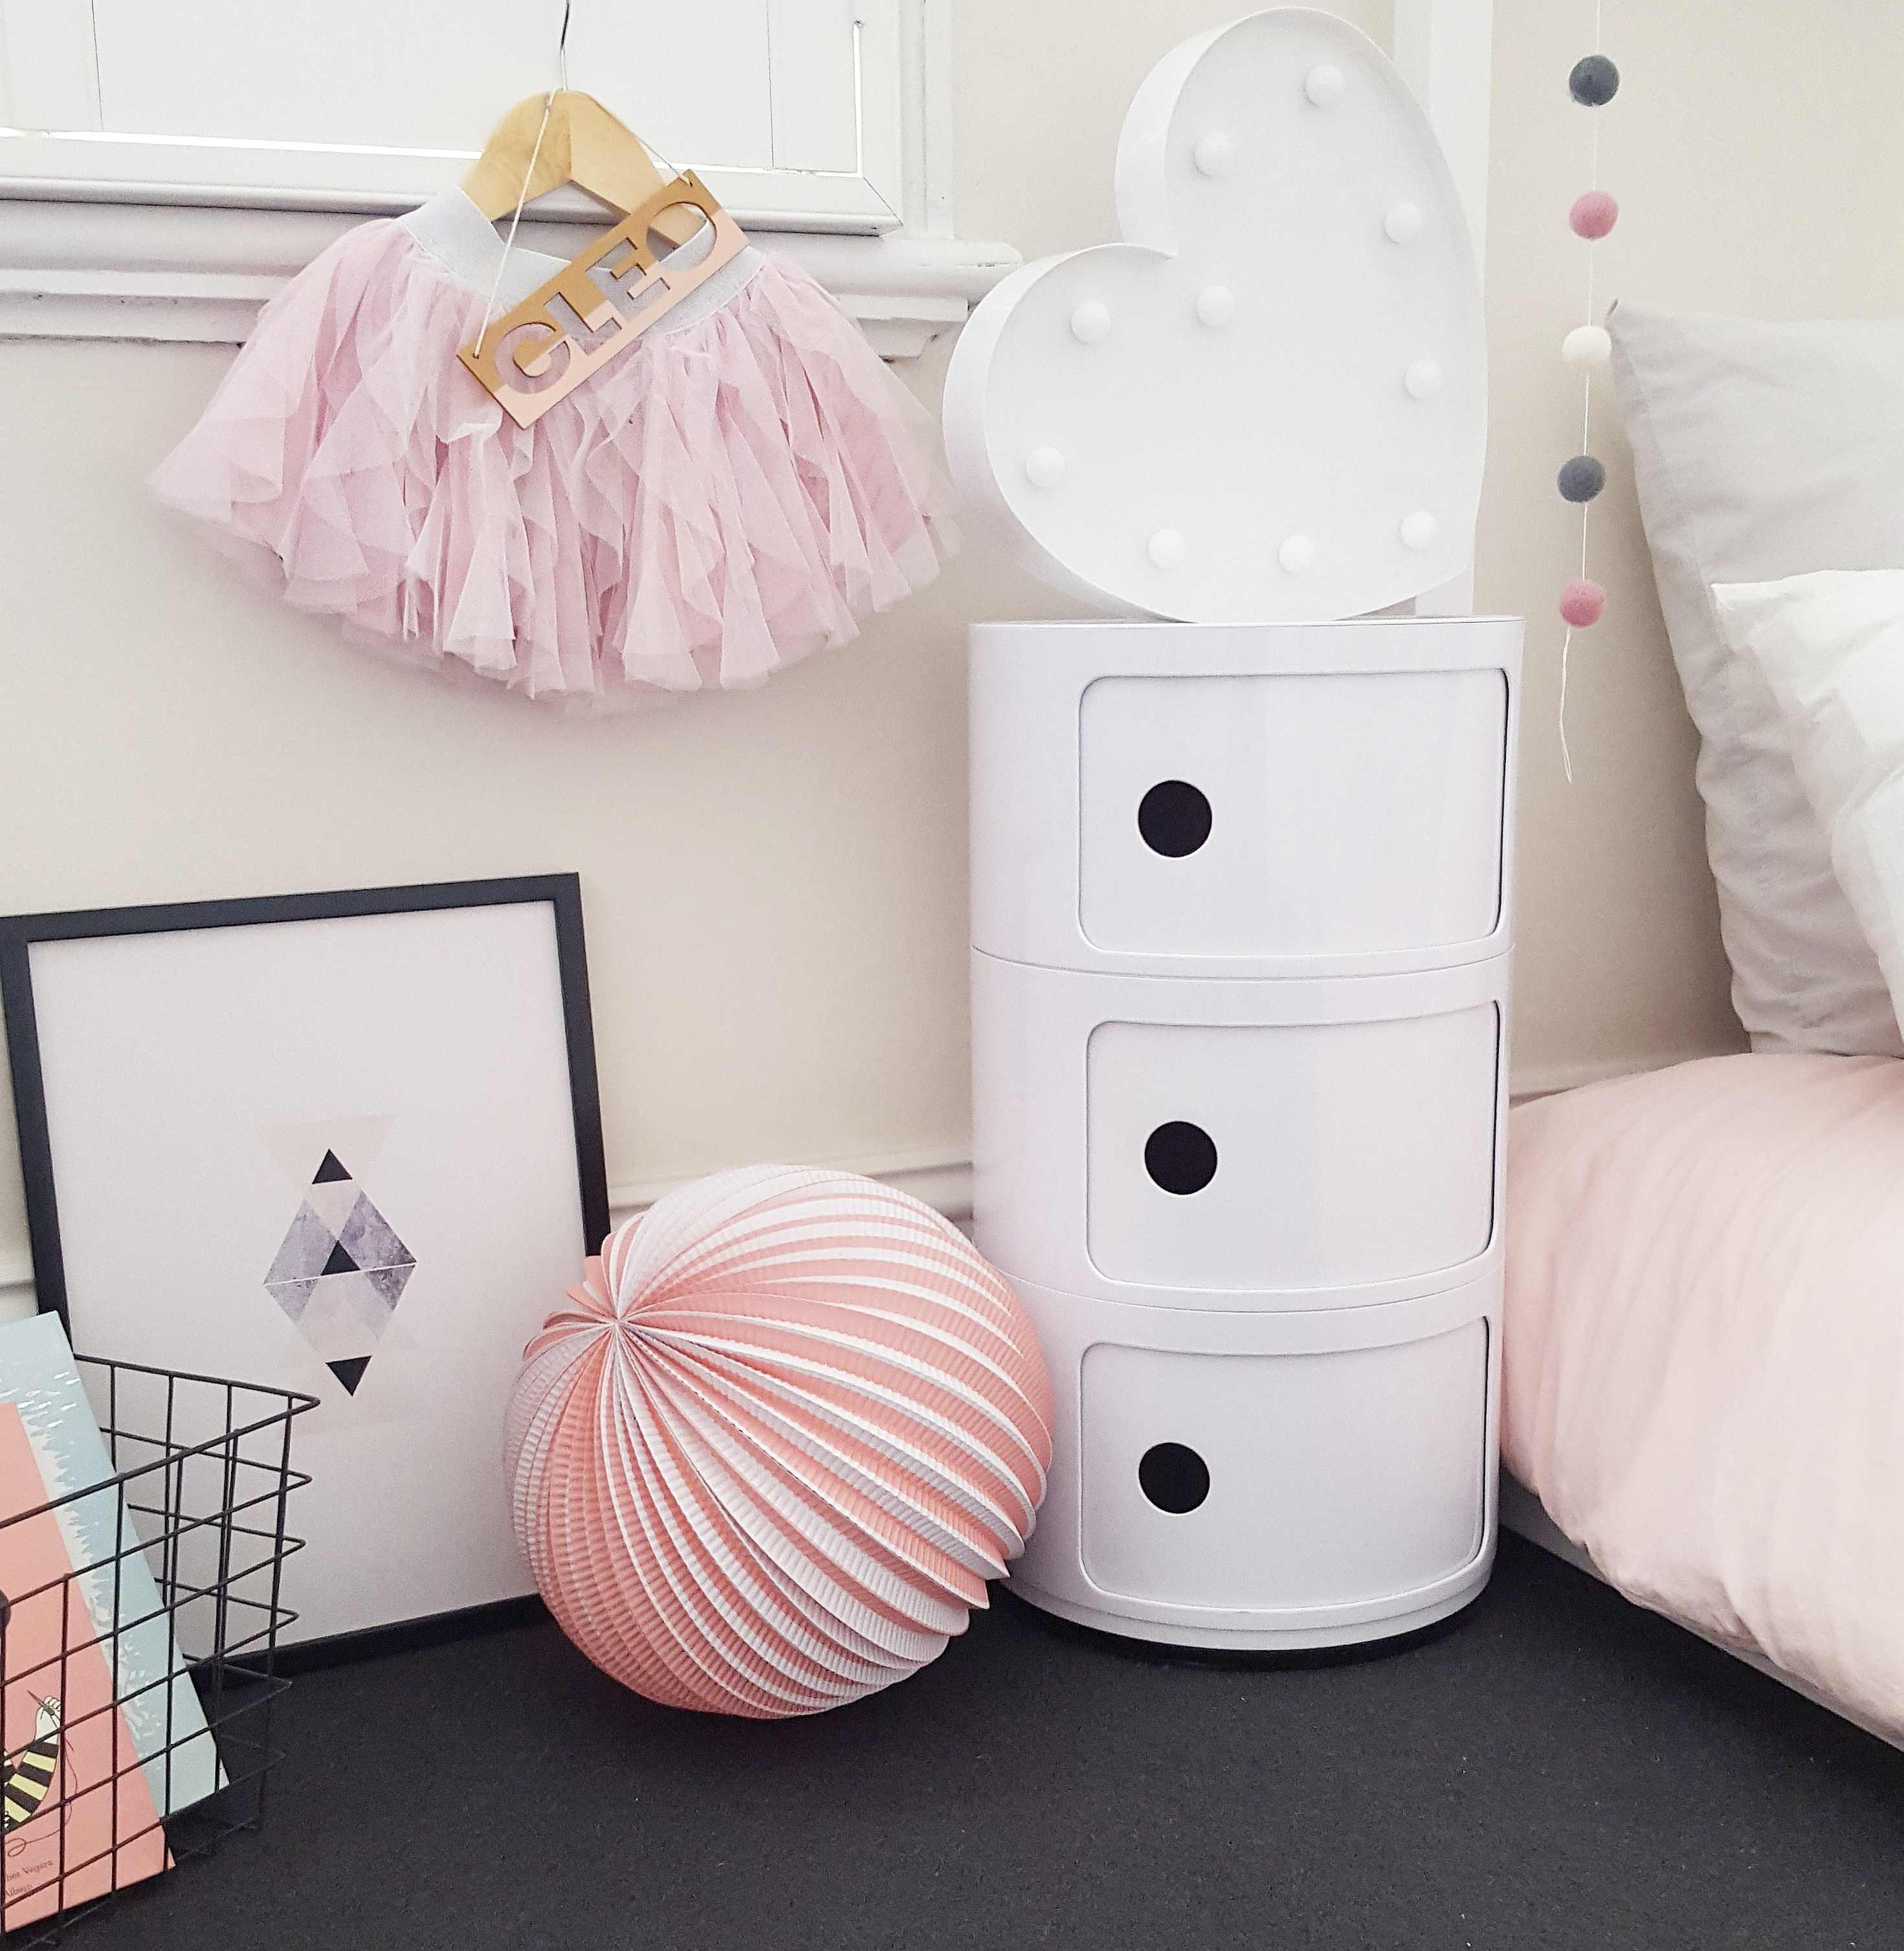 decorating a kids room on a budget the reject shop